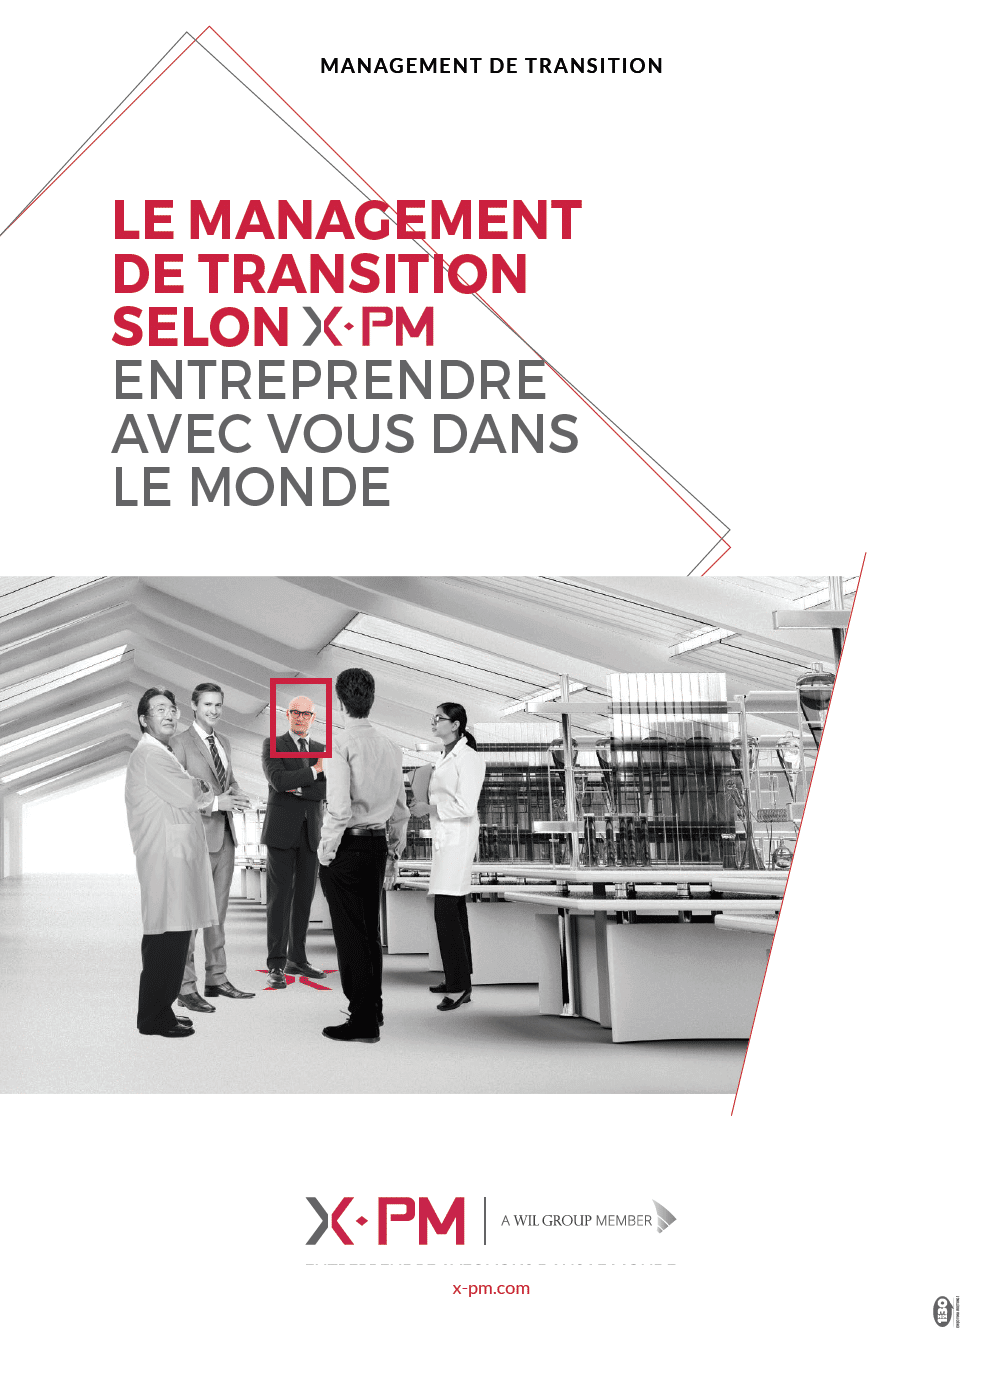 La management de transition selon x-pm